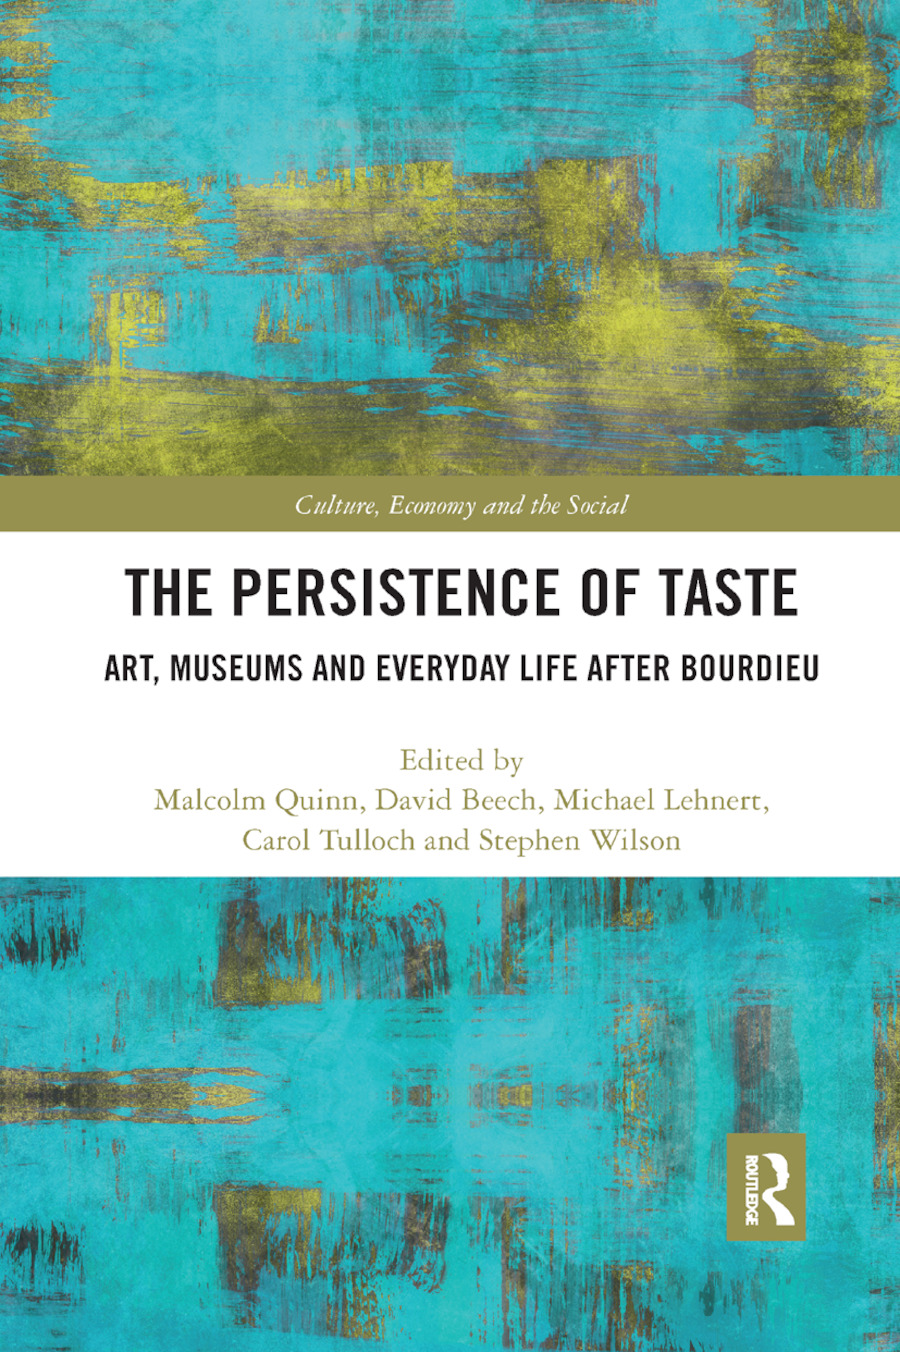 The Persistence of Taste: Art, Museums and Everyday Life After Bourdieu book cover